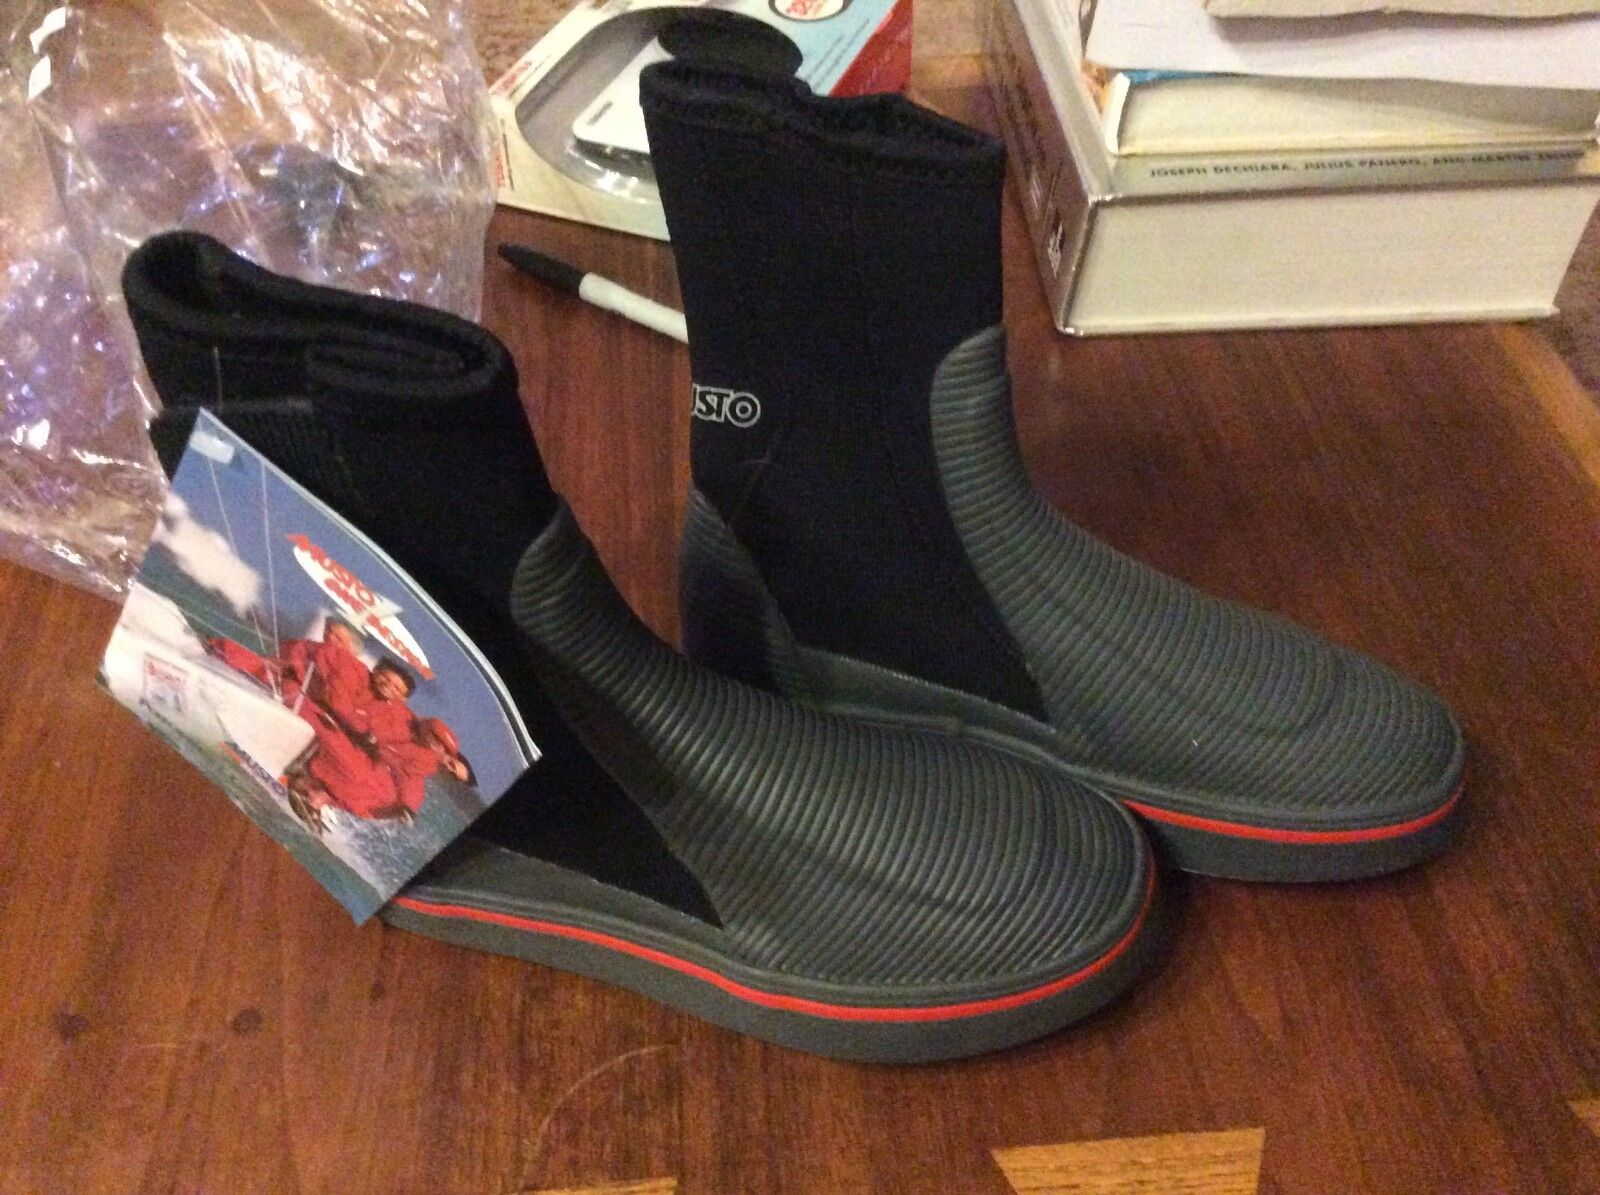 MUSTO M3 NEOPRENE OCEAN SAILING  BOOTS -Size 37 38 -Brand New in Box Discontinued  with 60% off discount